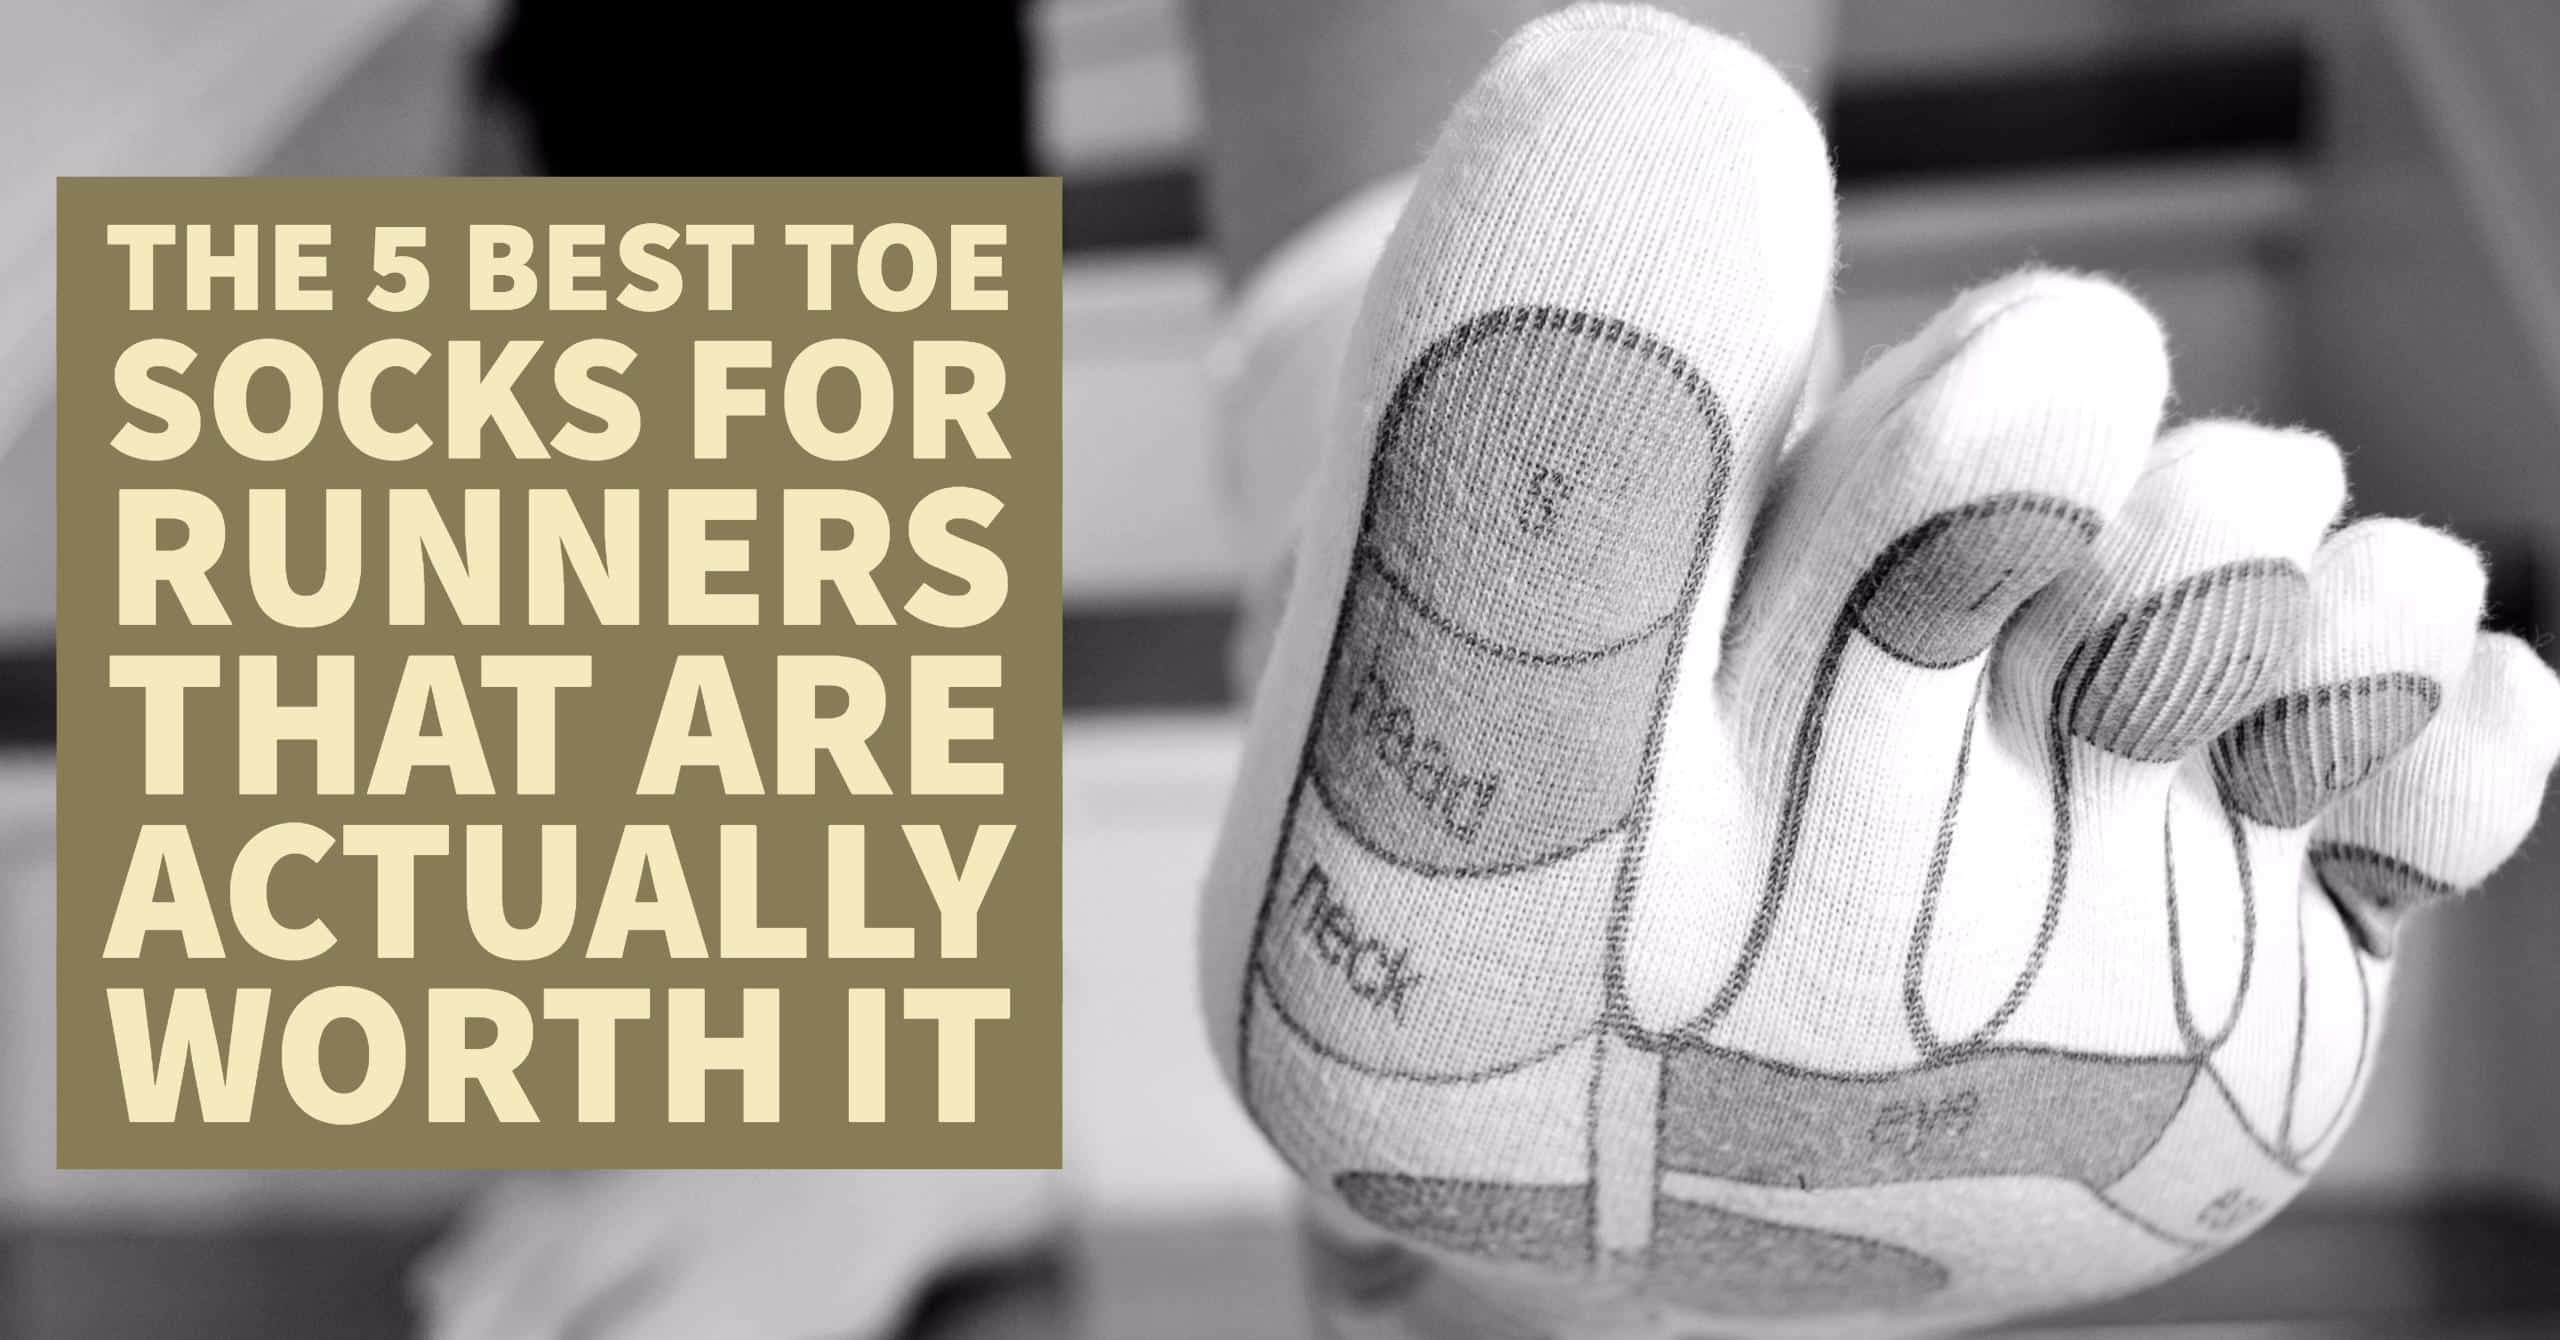 Toe socks provide really good protection against friction which can cause blisters between the toes. We break down the 5 best toe socks that actually worth buying